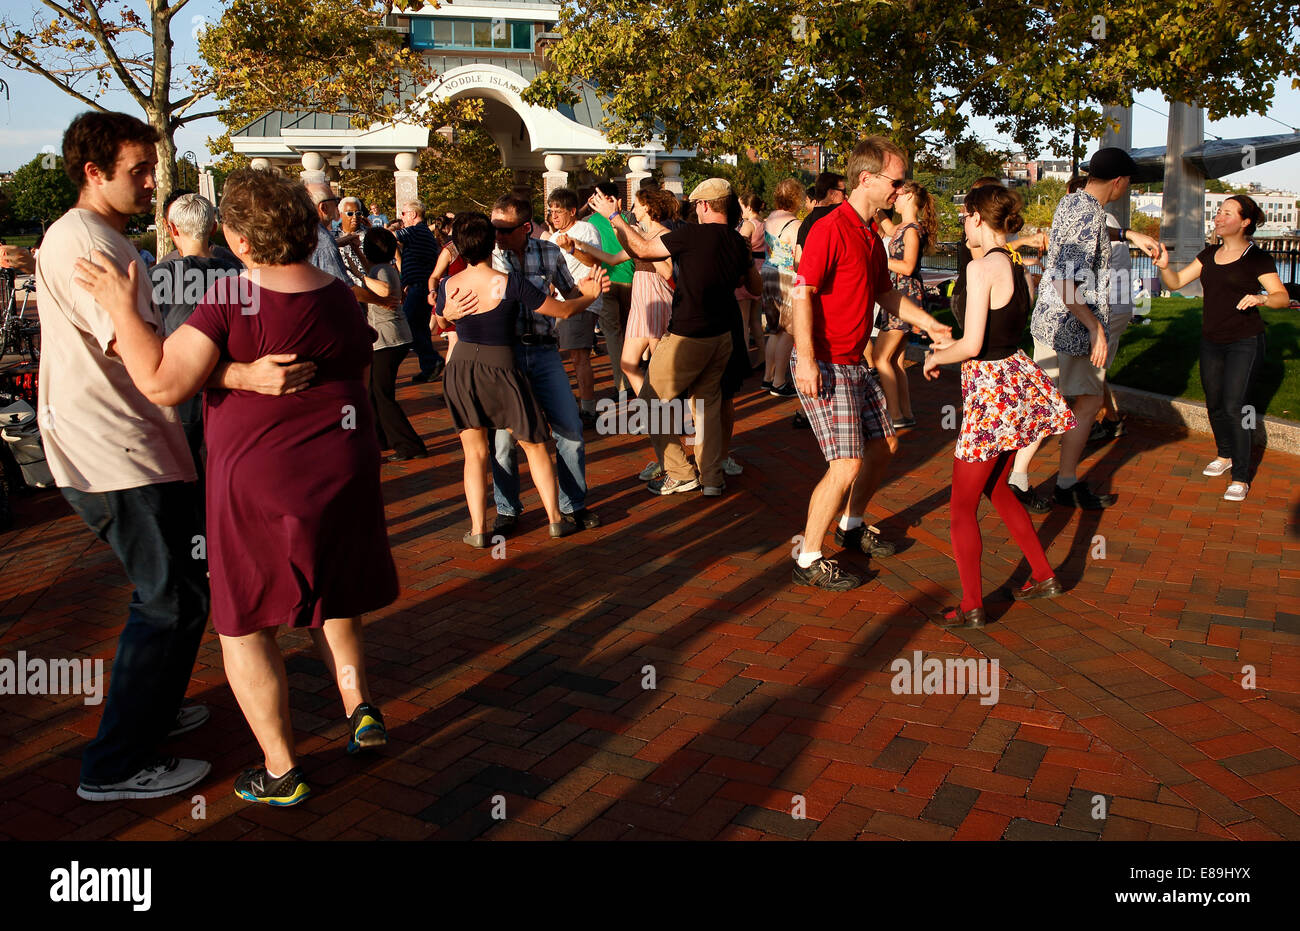 A Group Of People Swing Dancing In Piers Park Boston